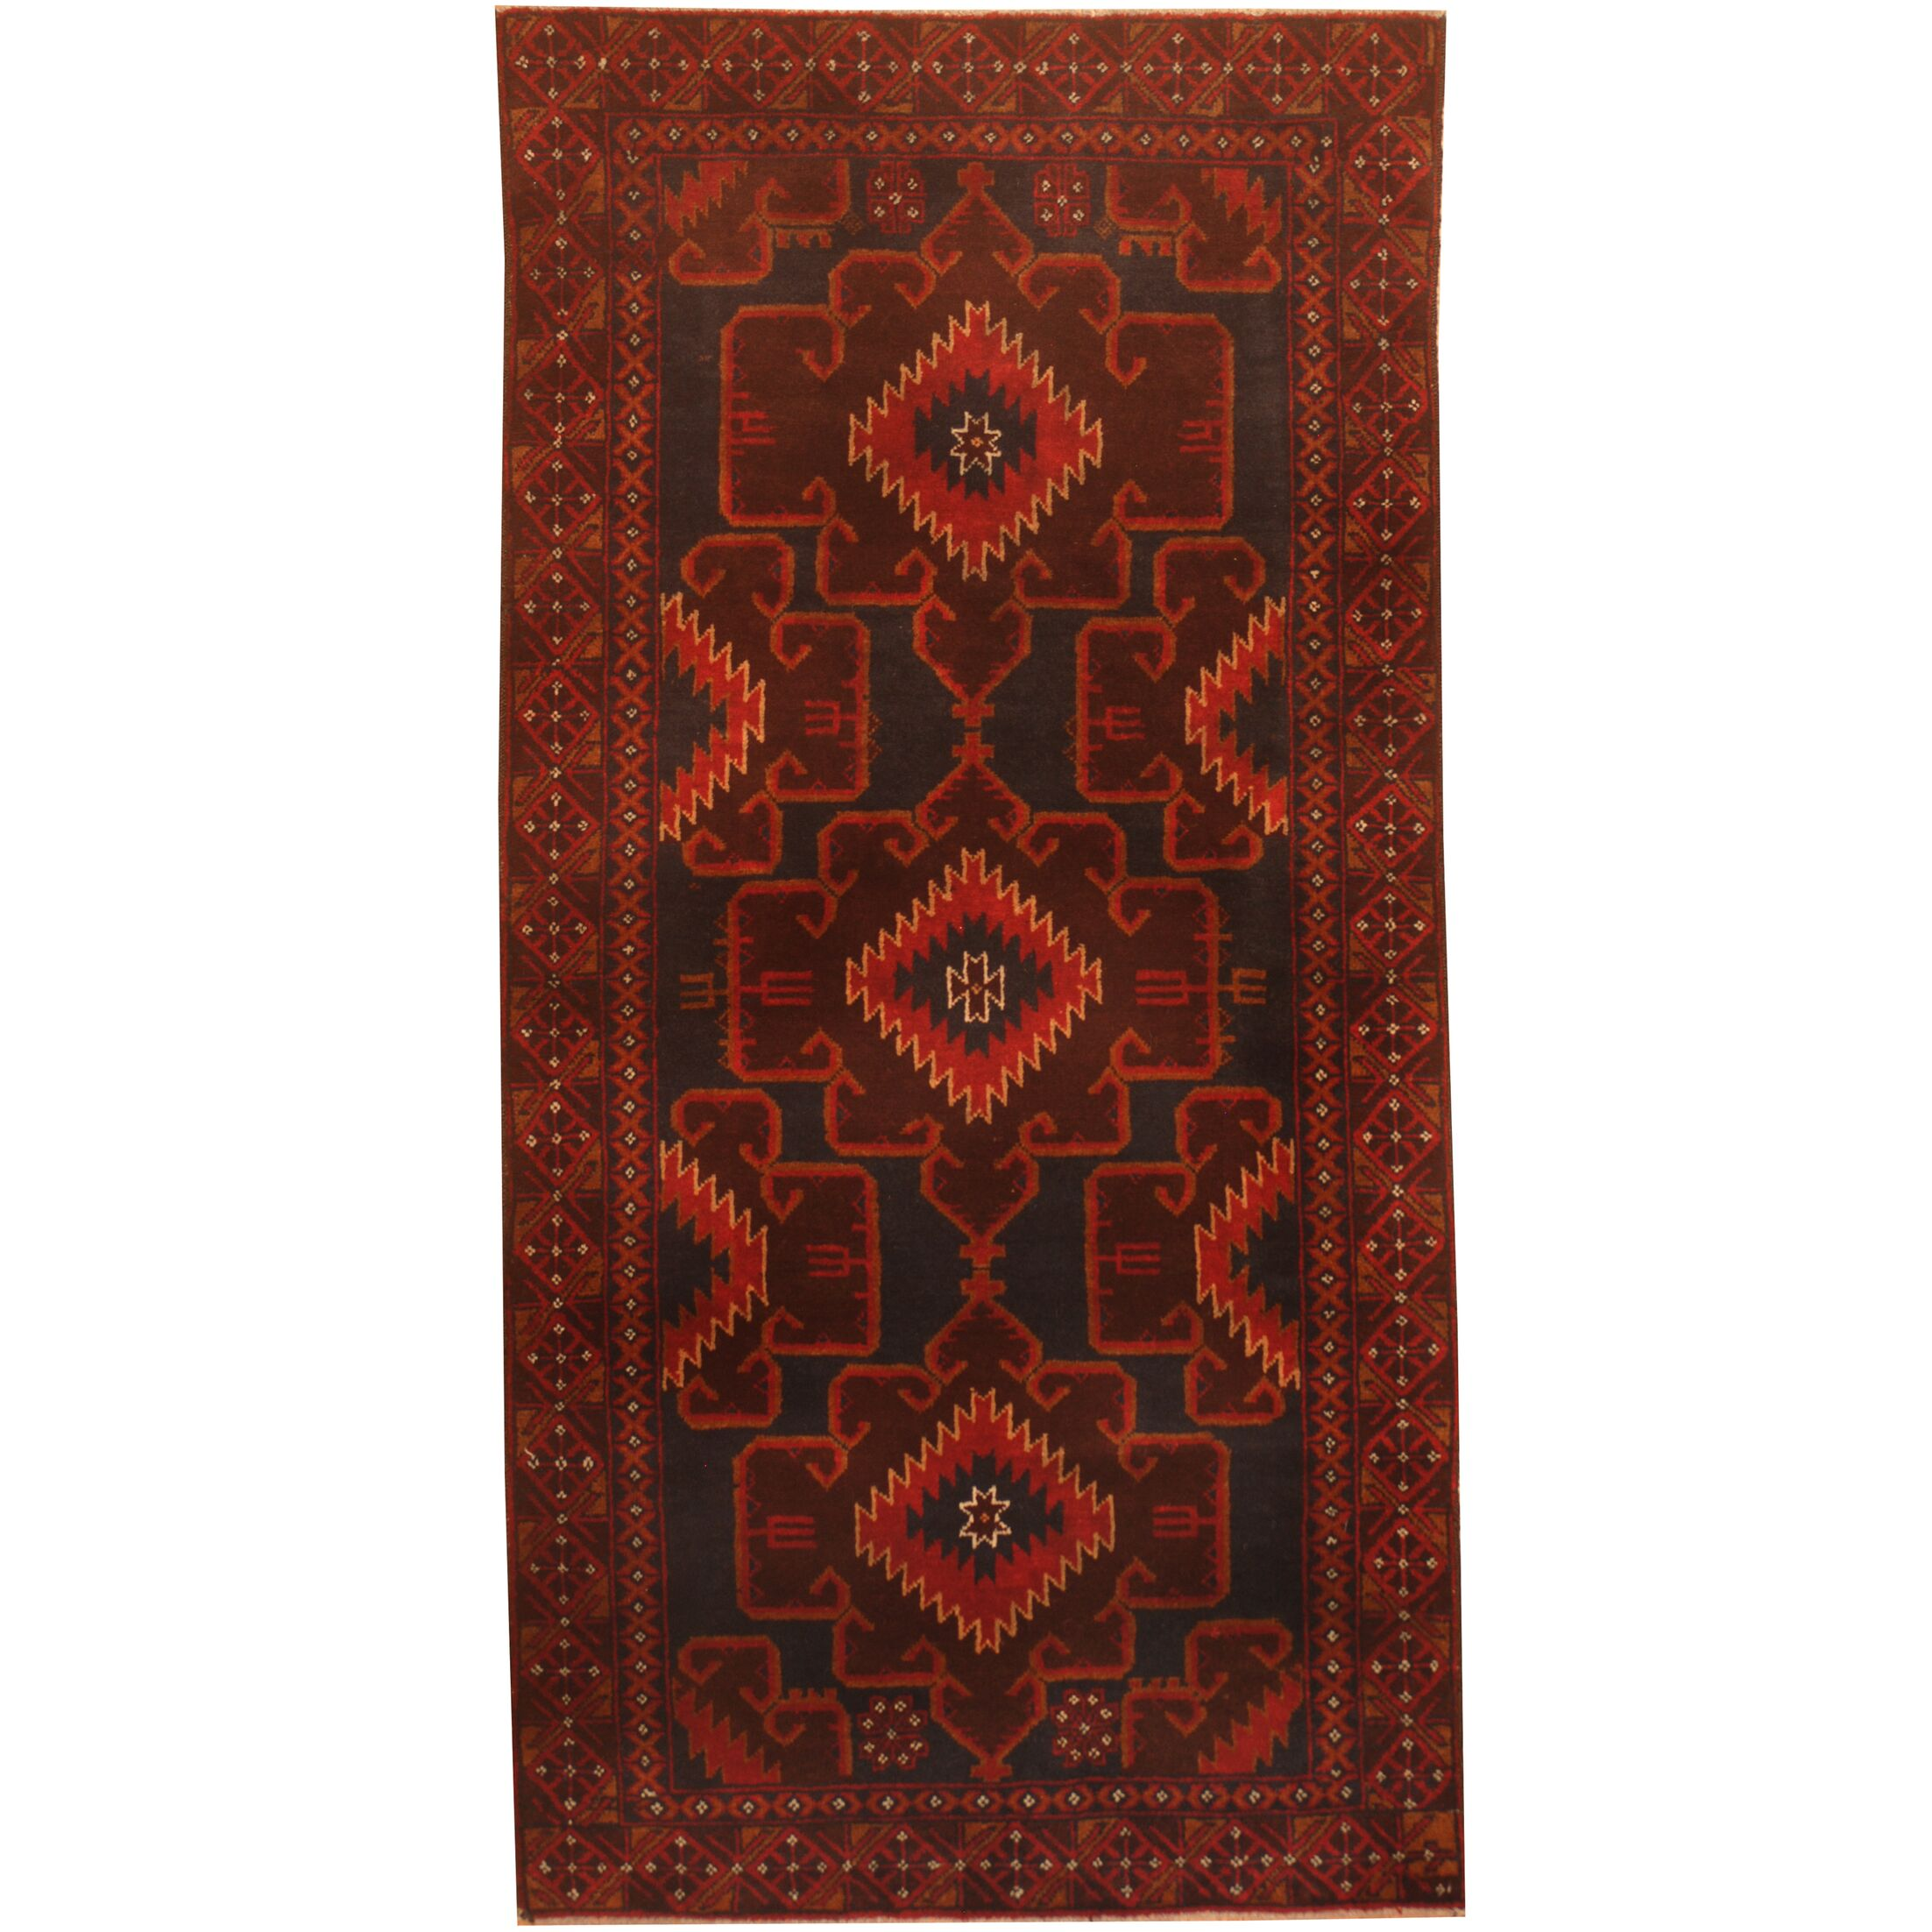 Prentice Hand-Knotted Navy/Red Area Rug